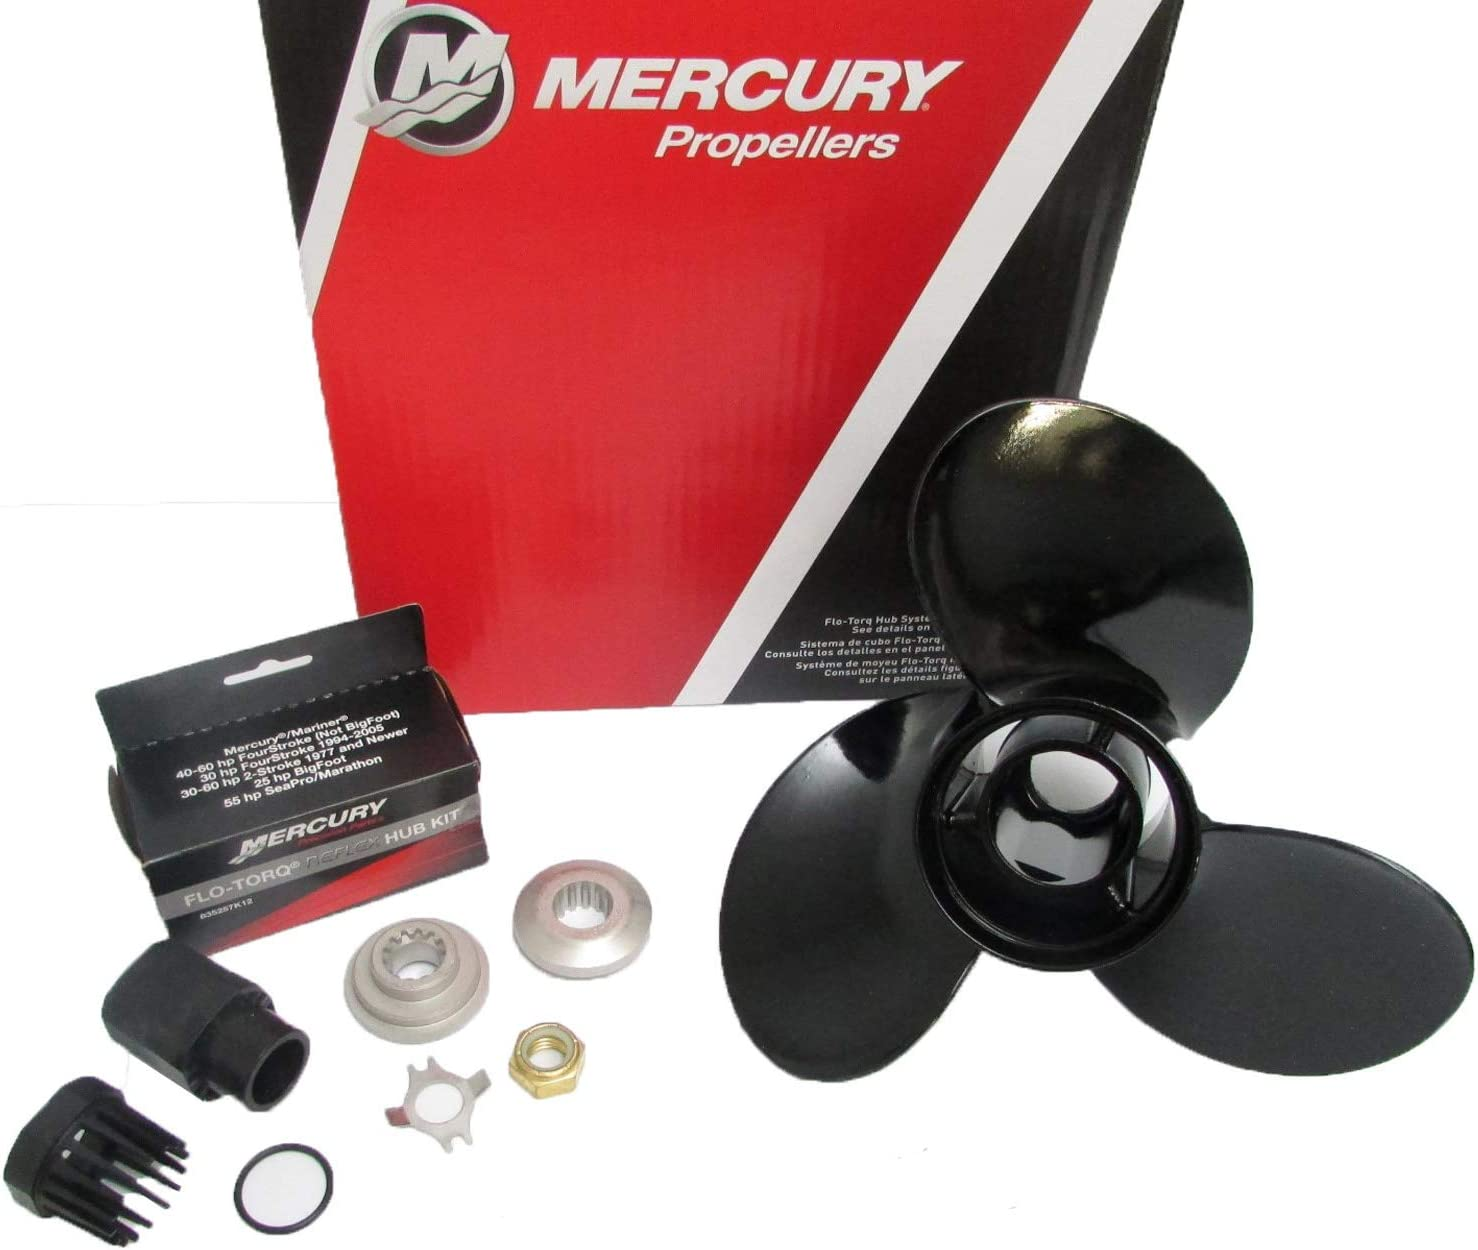 Mercury Marine Black Max 3-Blade Aluminum Propeller 10-1/2 x 13 Pitch